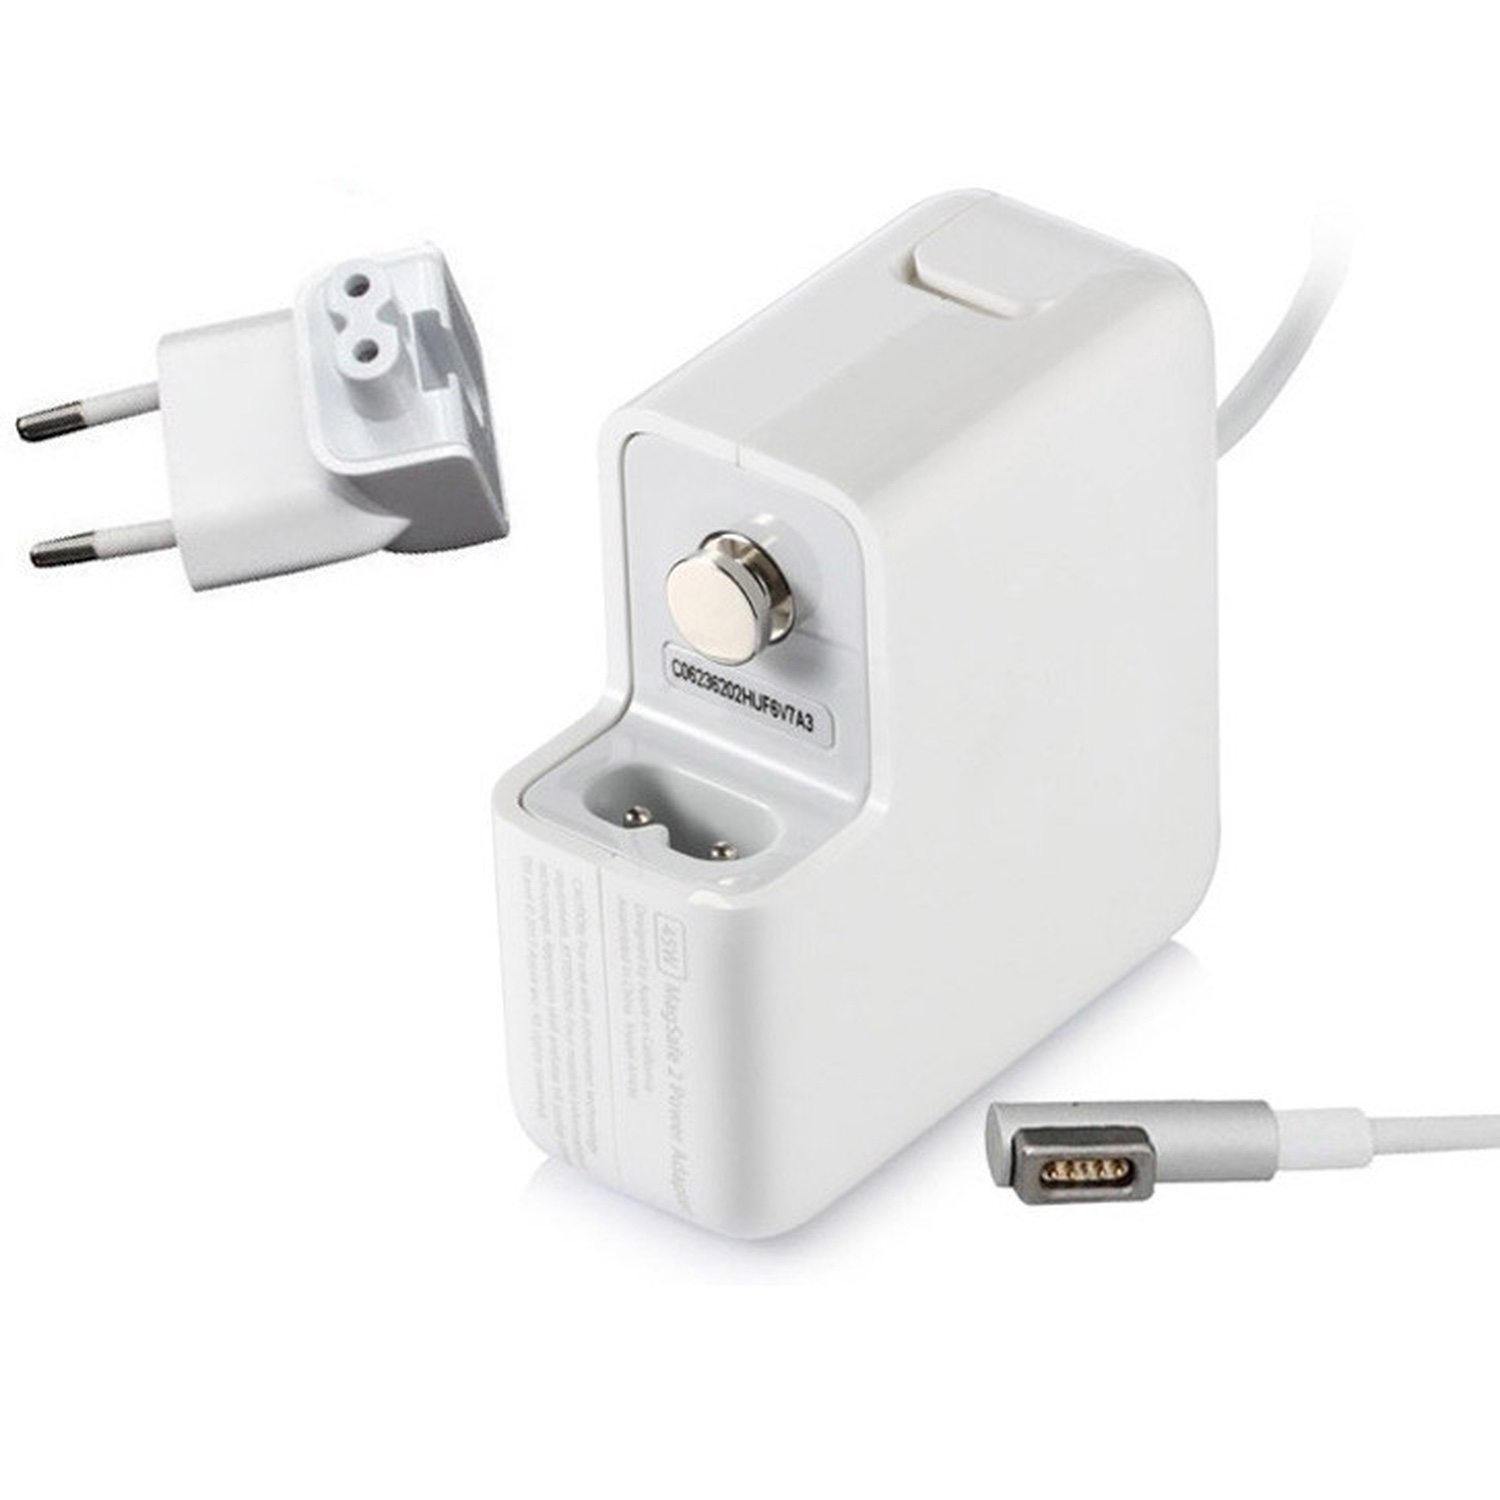 Apple 45W MagSafe Power Adapter for MacBook Air (COMPATIBLE)